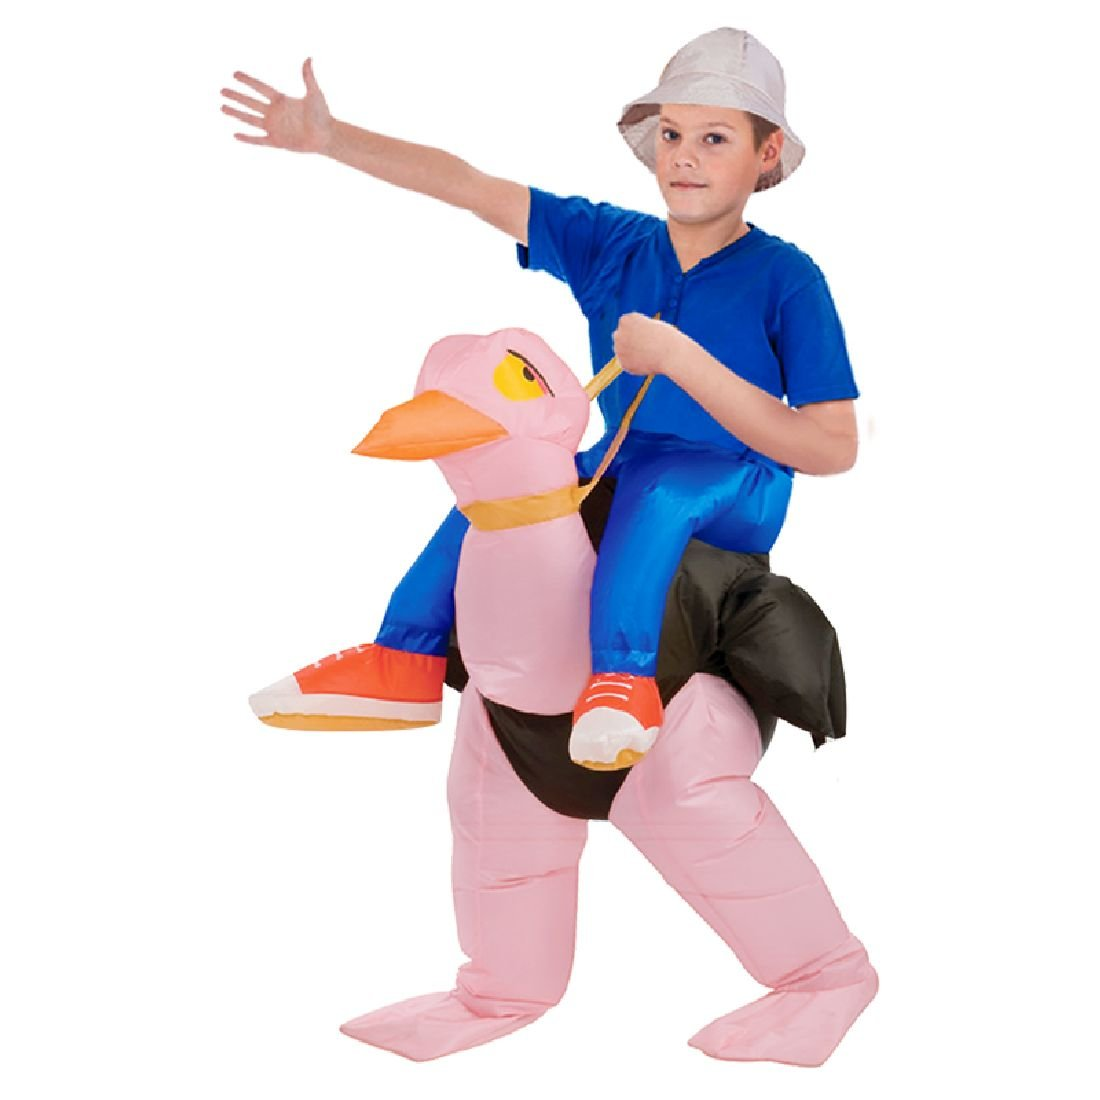 Inflatable Ostrich Fancy Dress Costume Hen Stag Halloween Cosplay 40 To 50 Inch by Crystalbella Inflatable Cos